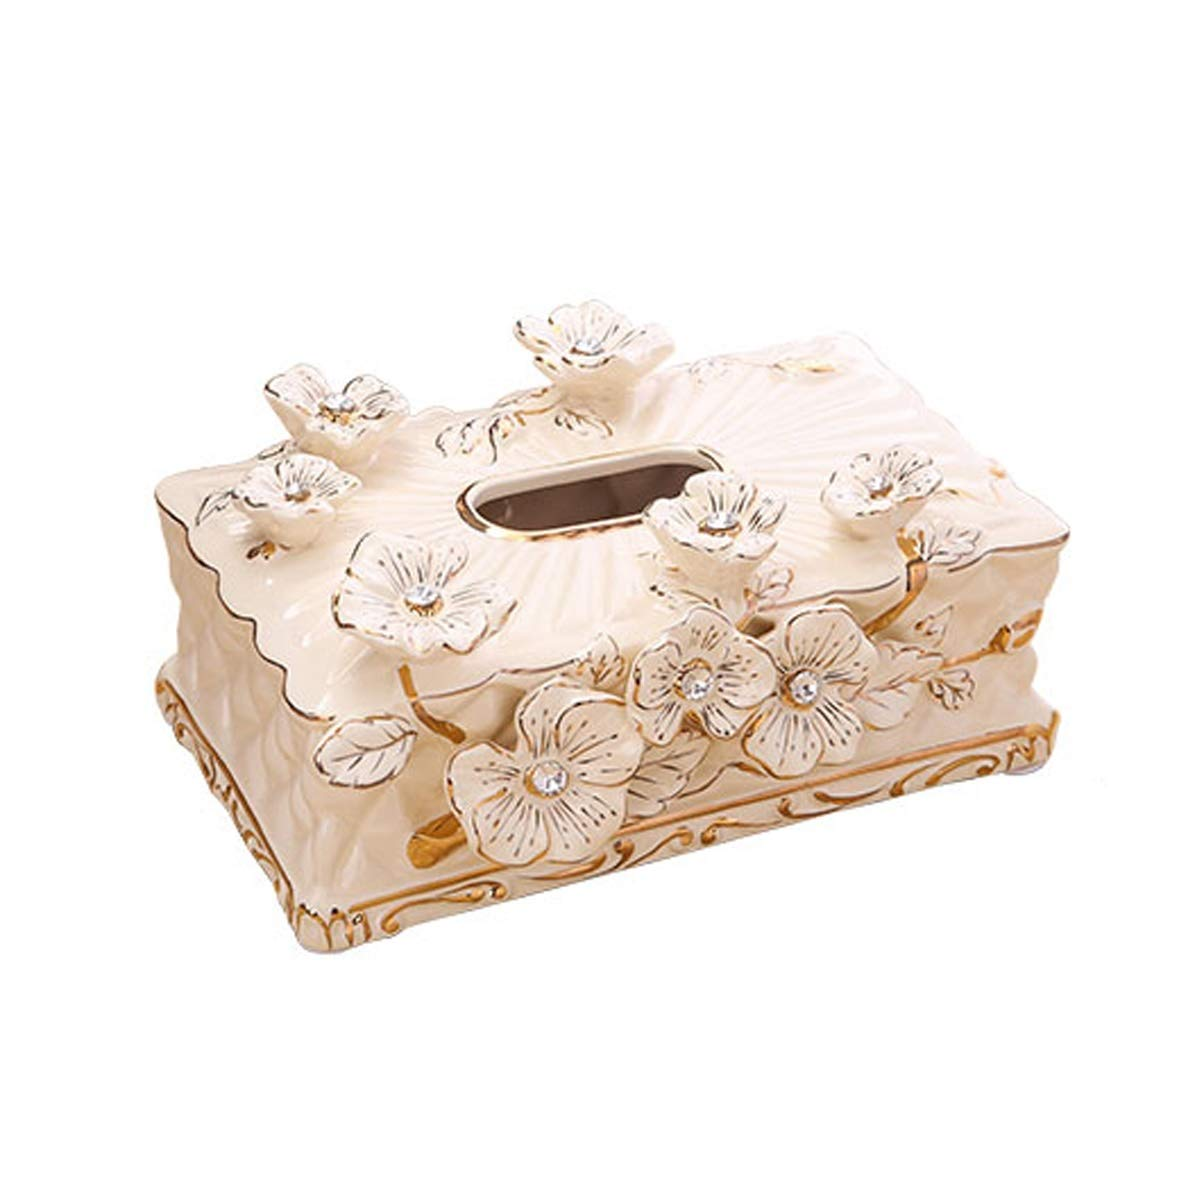 UCYG Ceramics Tissue Box Modern Home Living Room Coffee Table Decoration Desktop Creative Storage Napkin Box,Cream Color,281610cm by UCYG